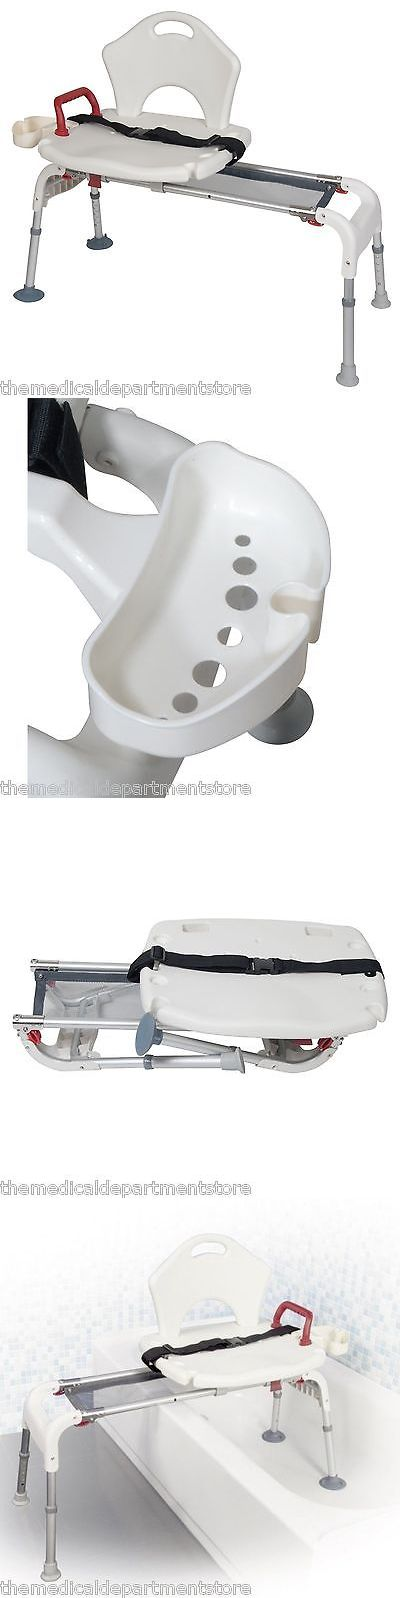 Transfer Boards and Benches: Bath Tub Transfer Bench Folding Universal Sliding Shower Chair Seat Rtl12075 -> BUY IT NOW ONLY: $146.99 on eBay!